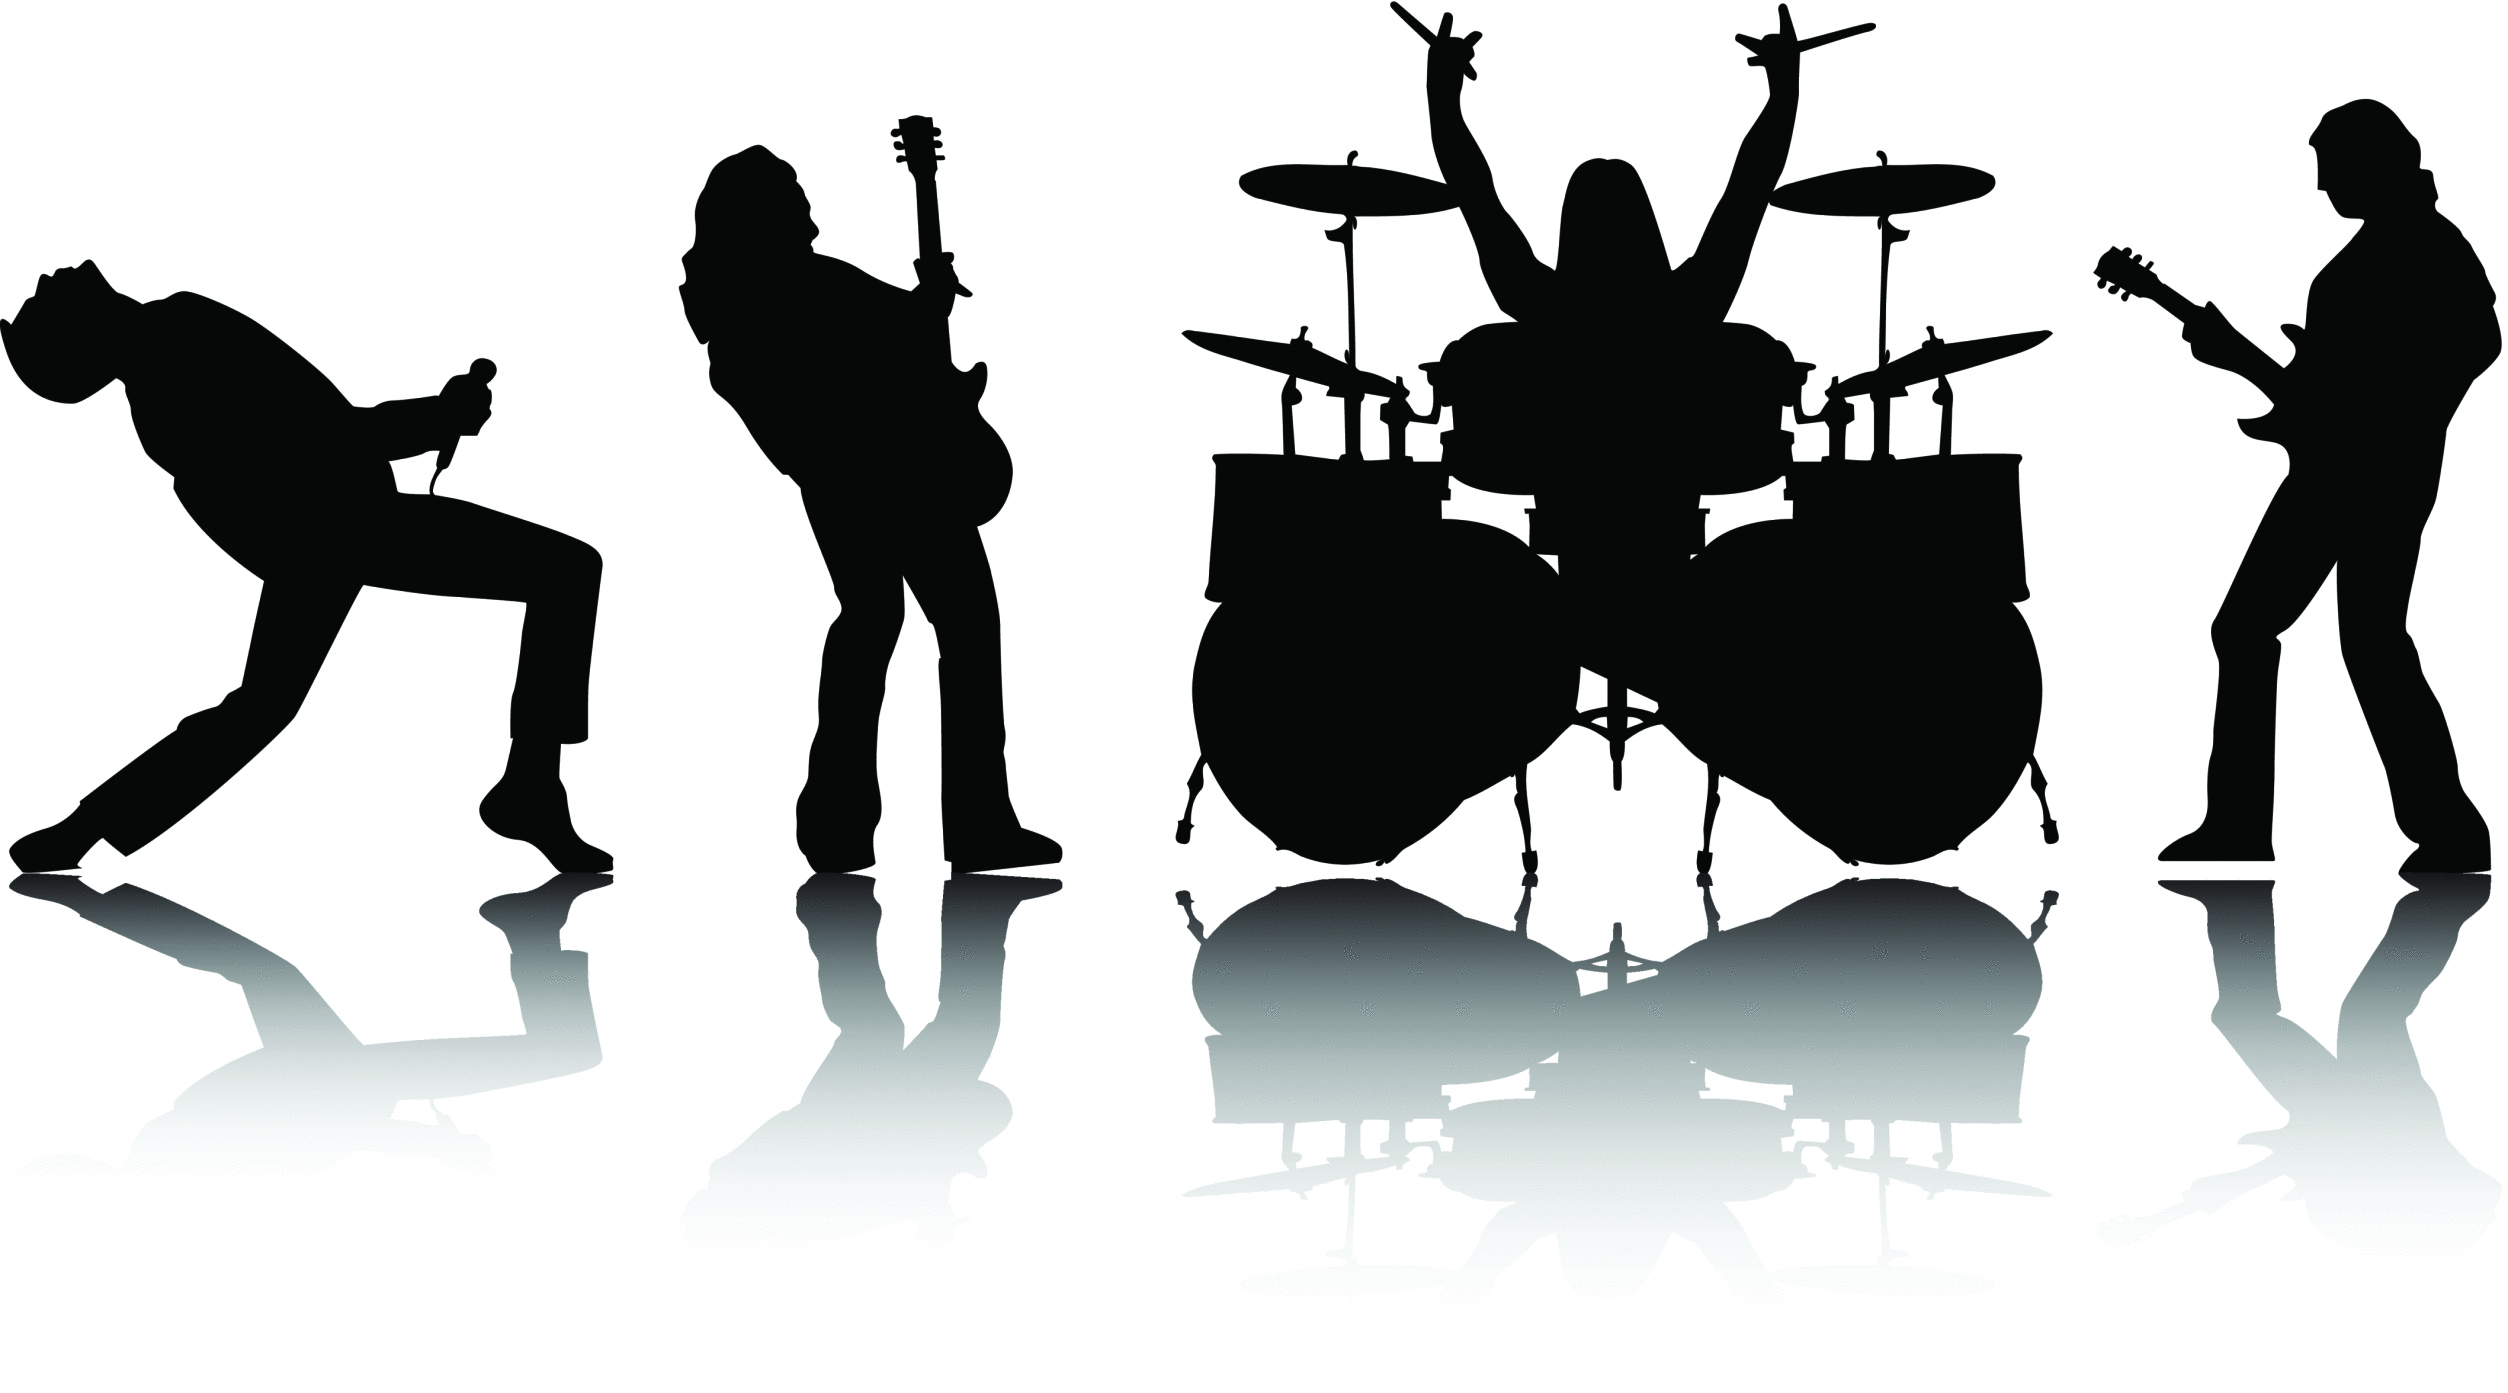 Rock band clip art cliparts and others inspiration 2.